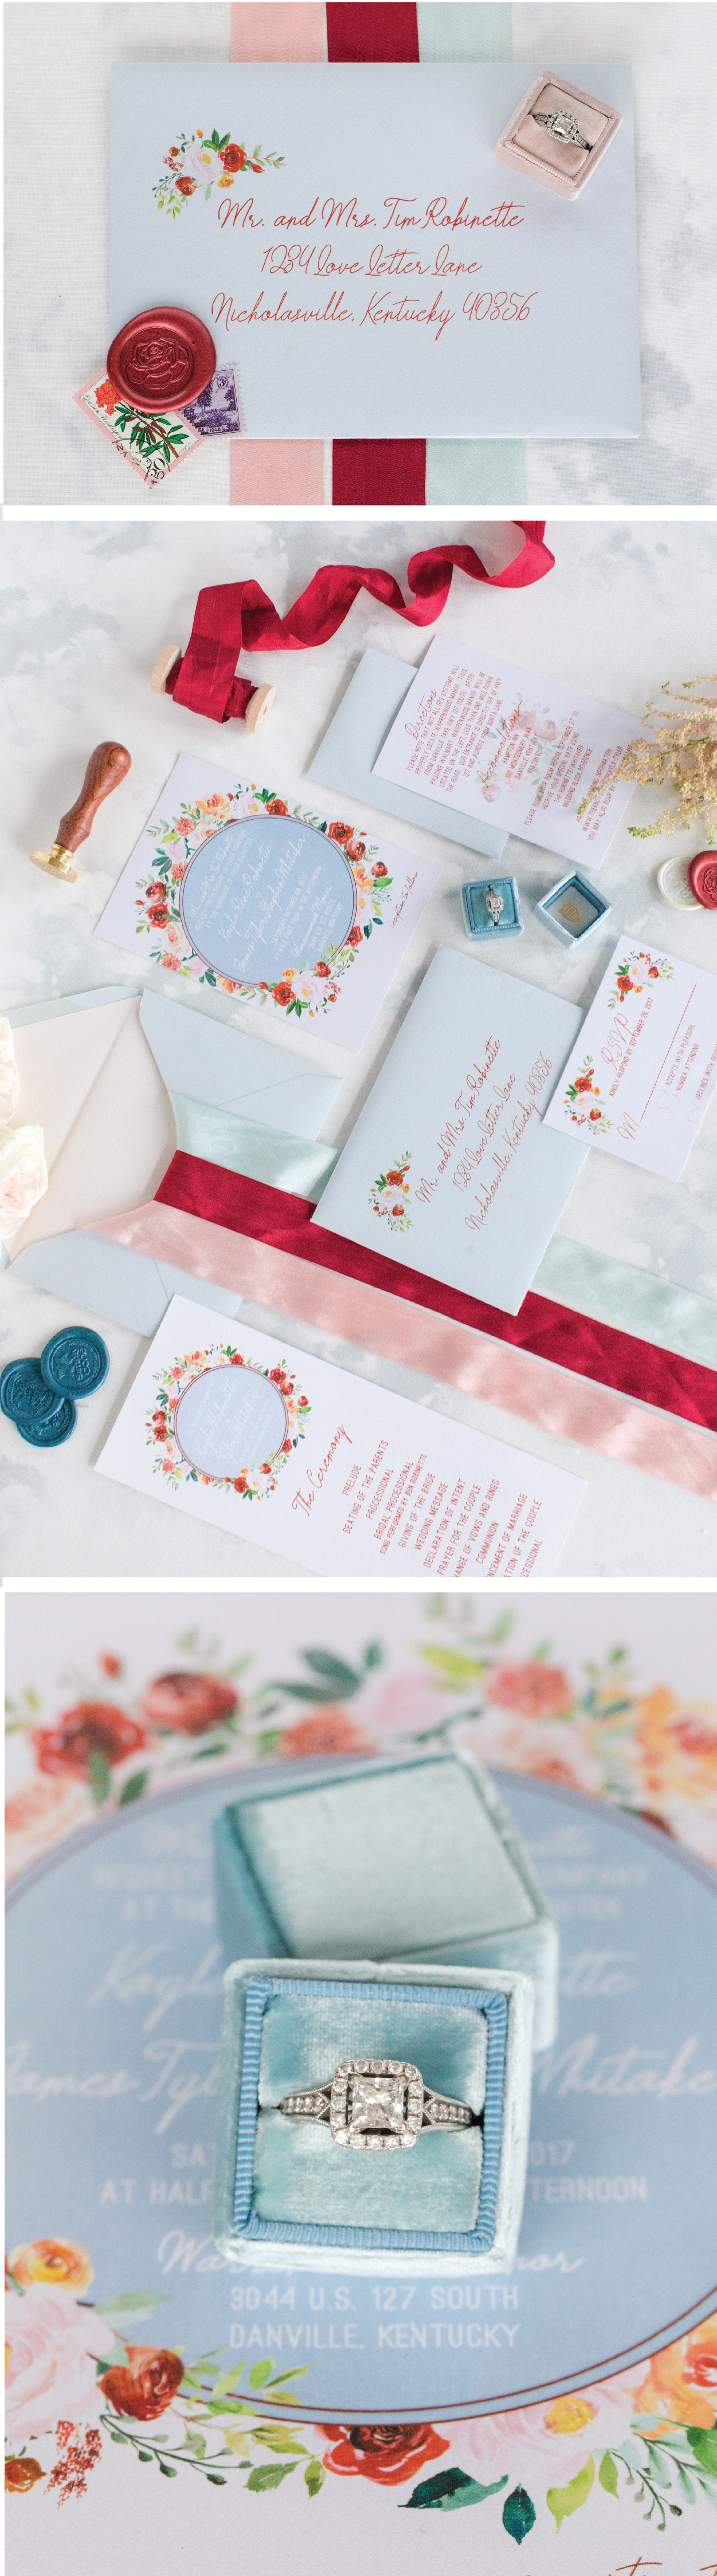 Pinterest Wedding Invites-03